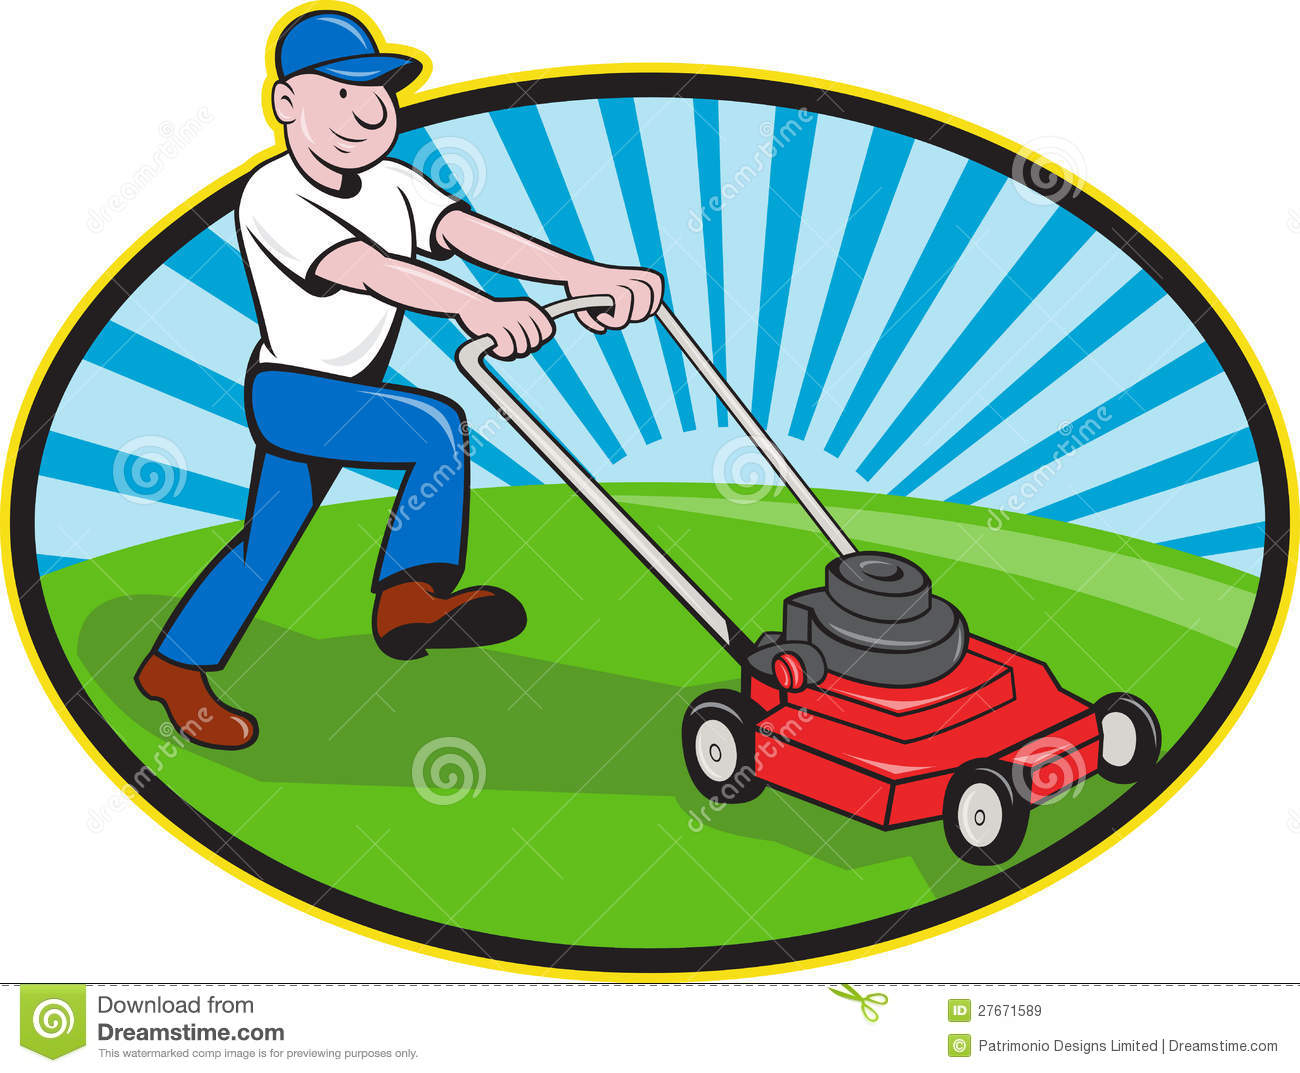 Lawn Mower Man Gardener Cartoon Royalty Free Stock Images - Image ...